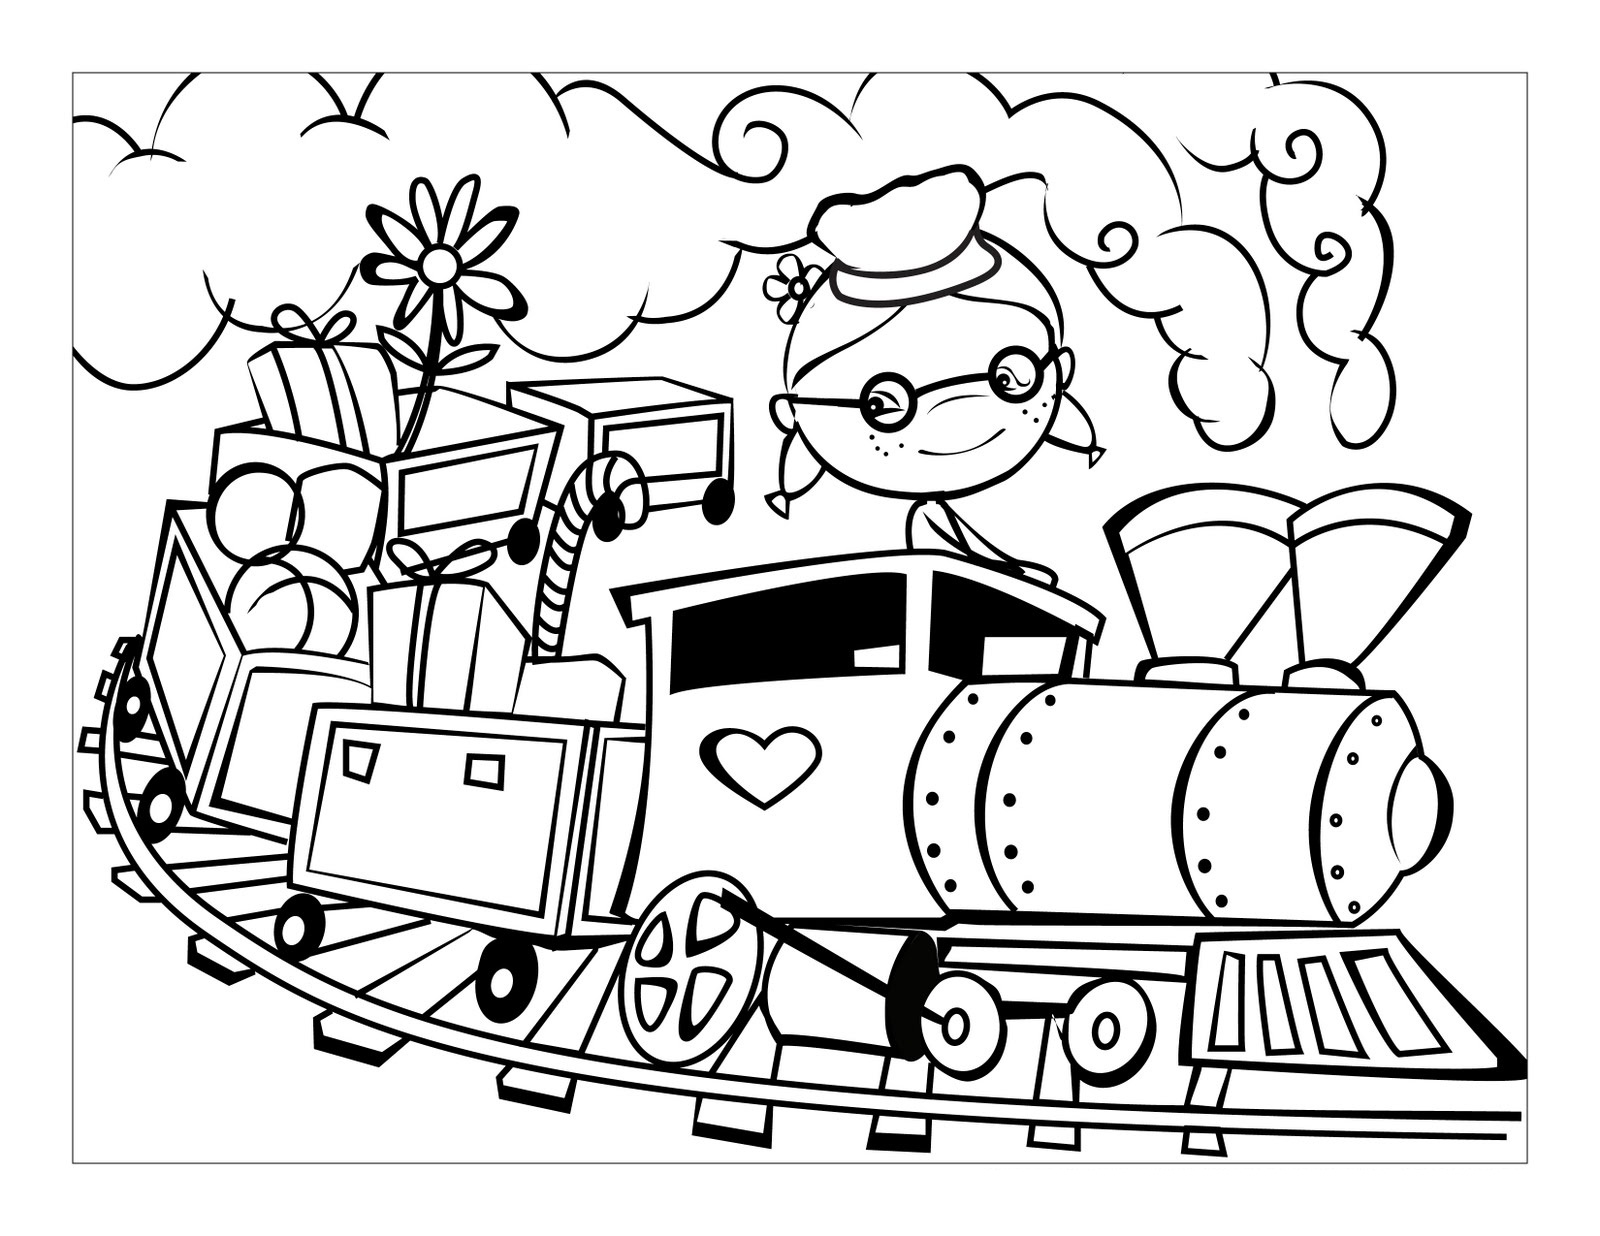 Coloring for adults cars - Adult Coloring Books Of Cars Train Cars Coloring Pages